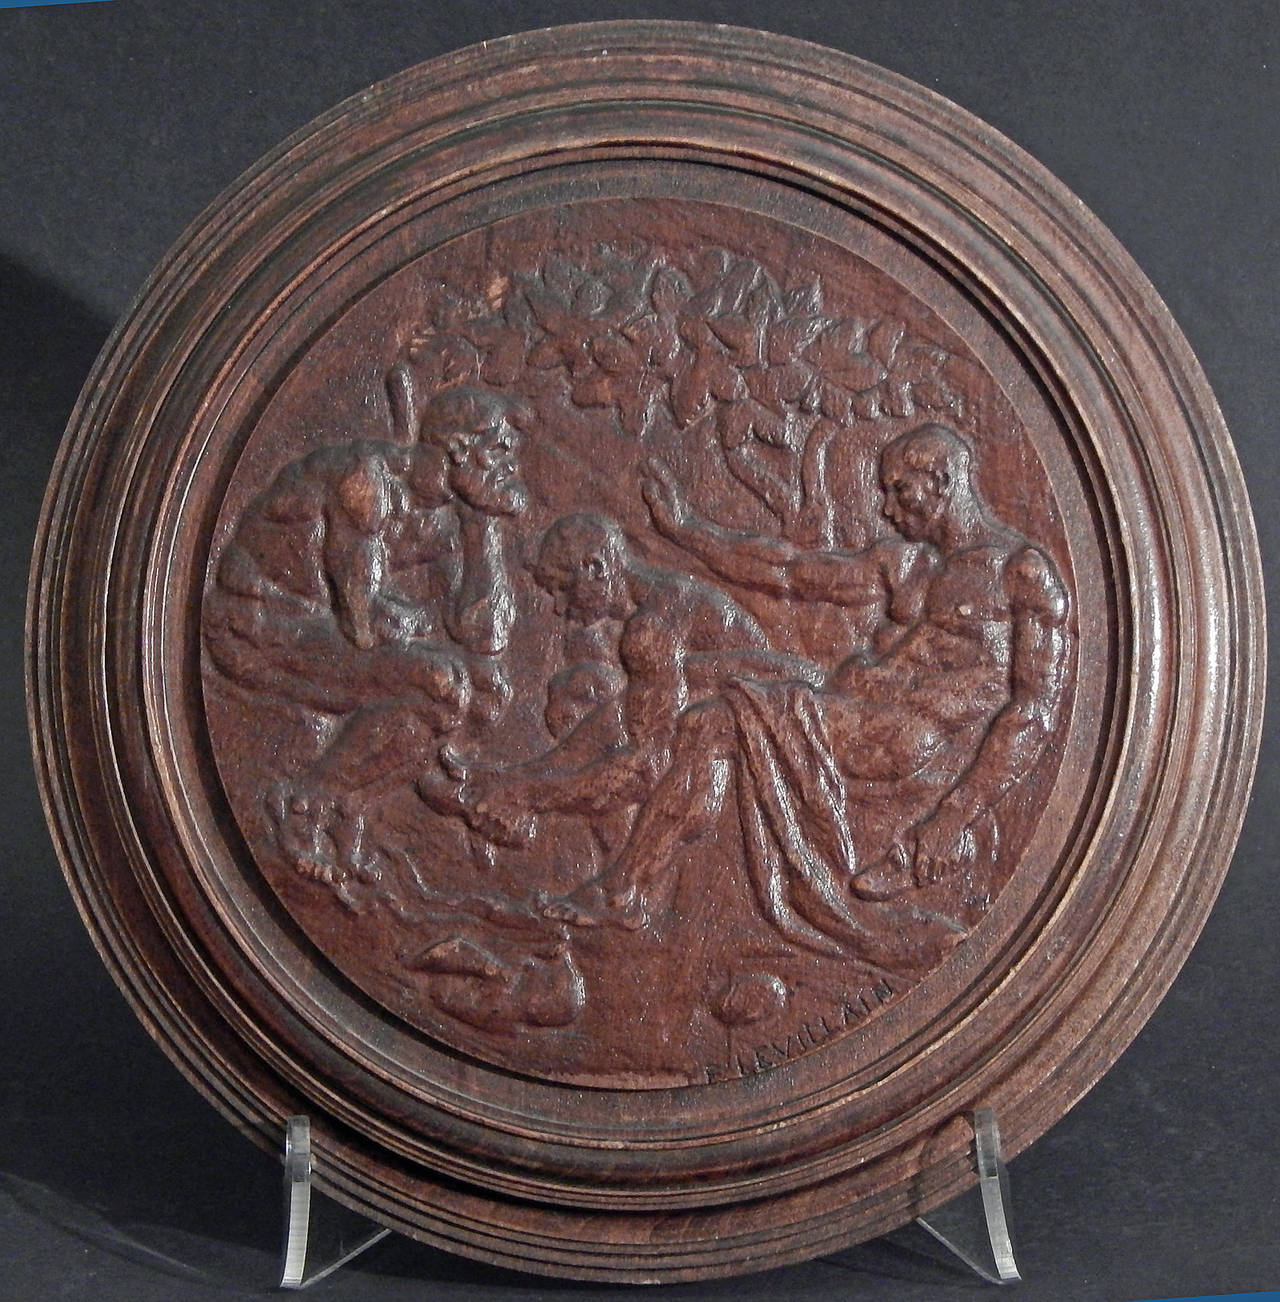 This very fine carved relief panel was sculpted by Ferdinand Levillain, France's master of bas relief at the turn of the last century. Levillain was famous for his low reliefs in medallic work and finely-detailed bronze objects (most cast by the